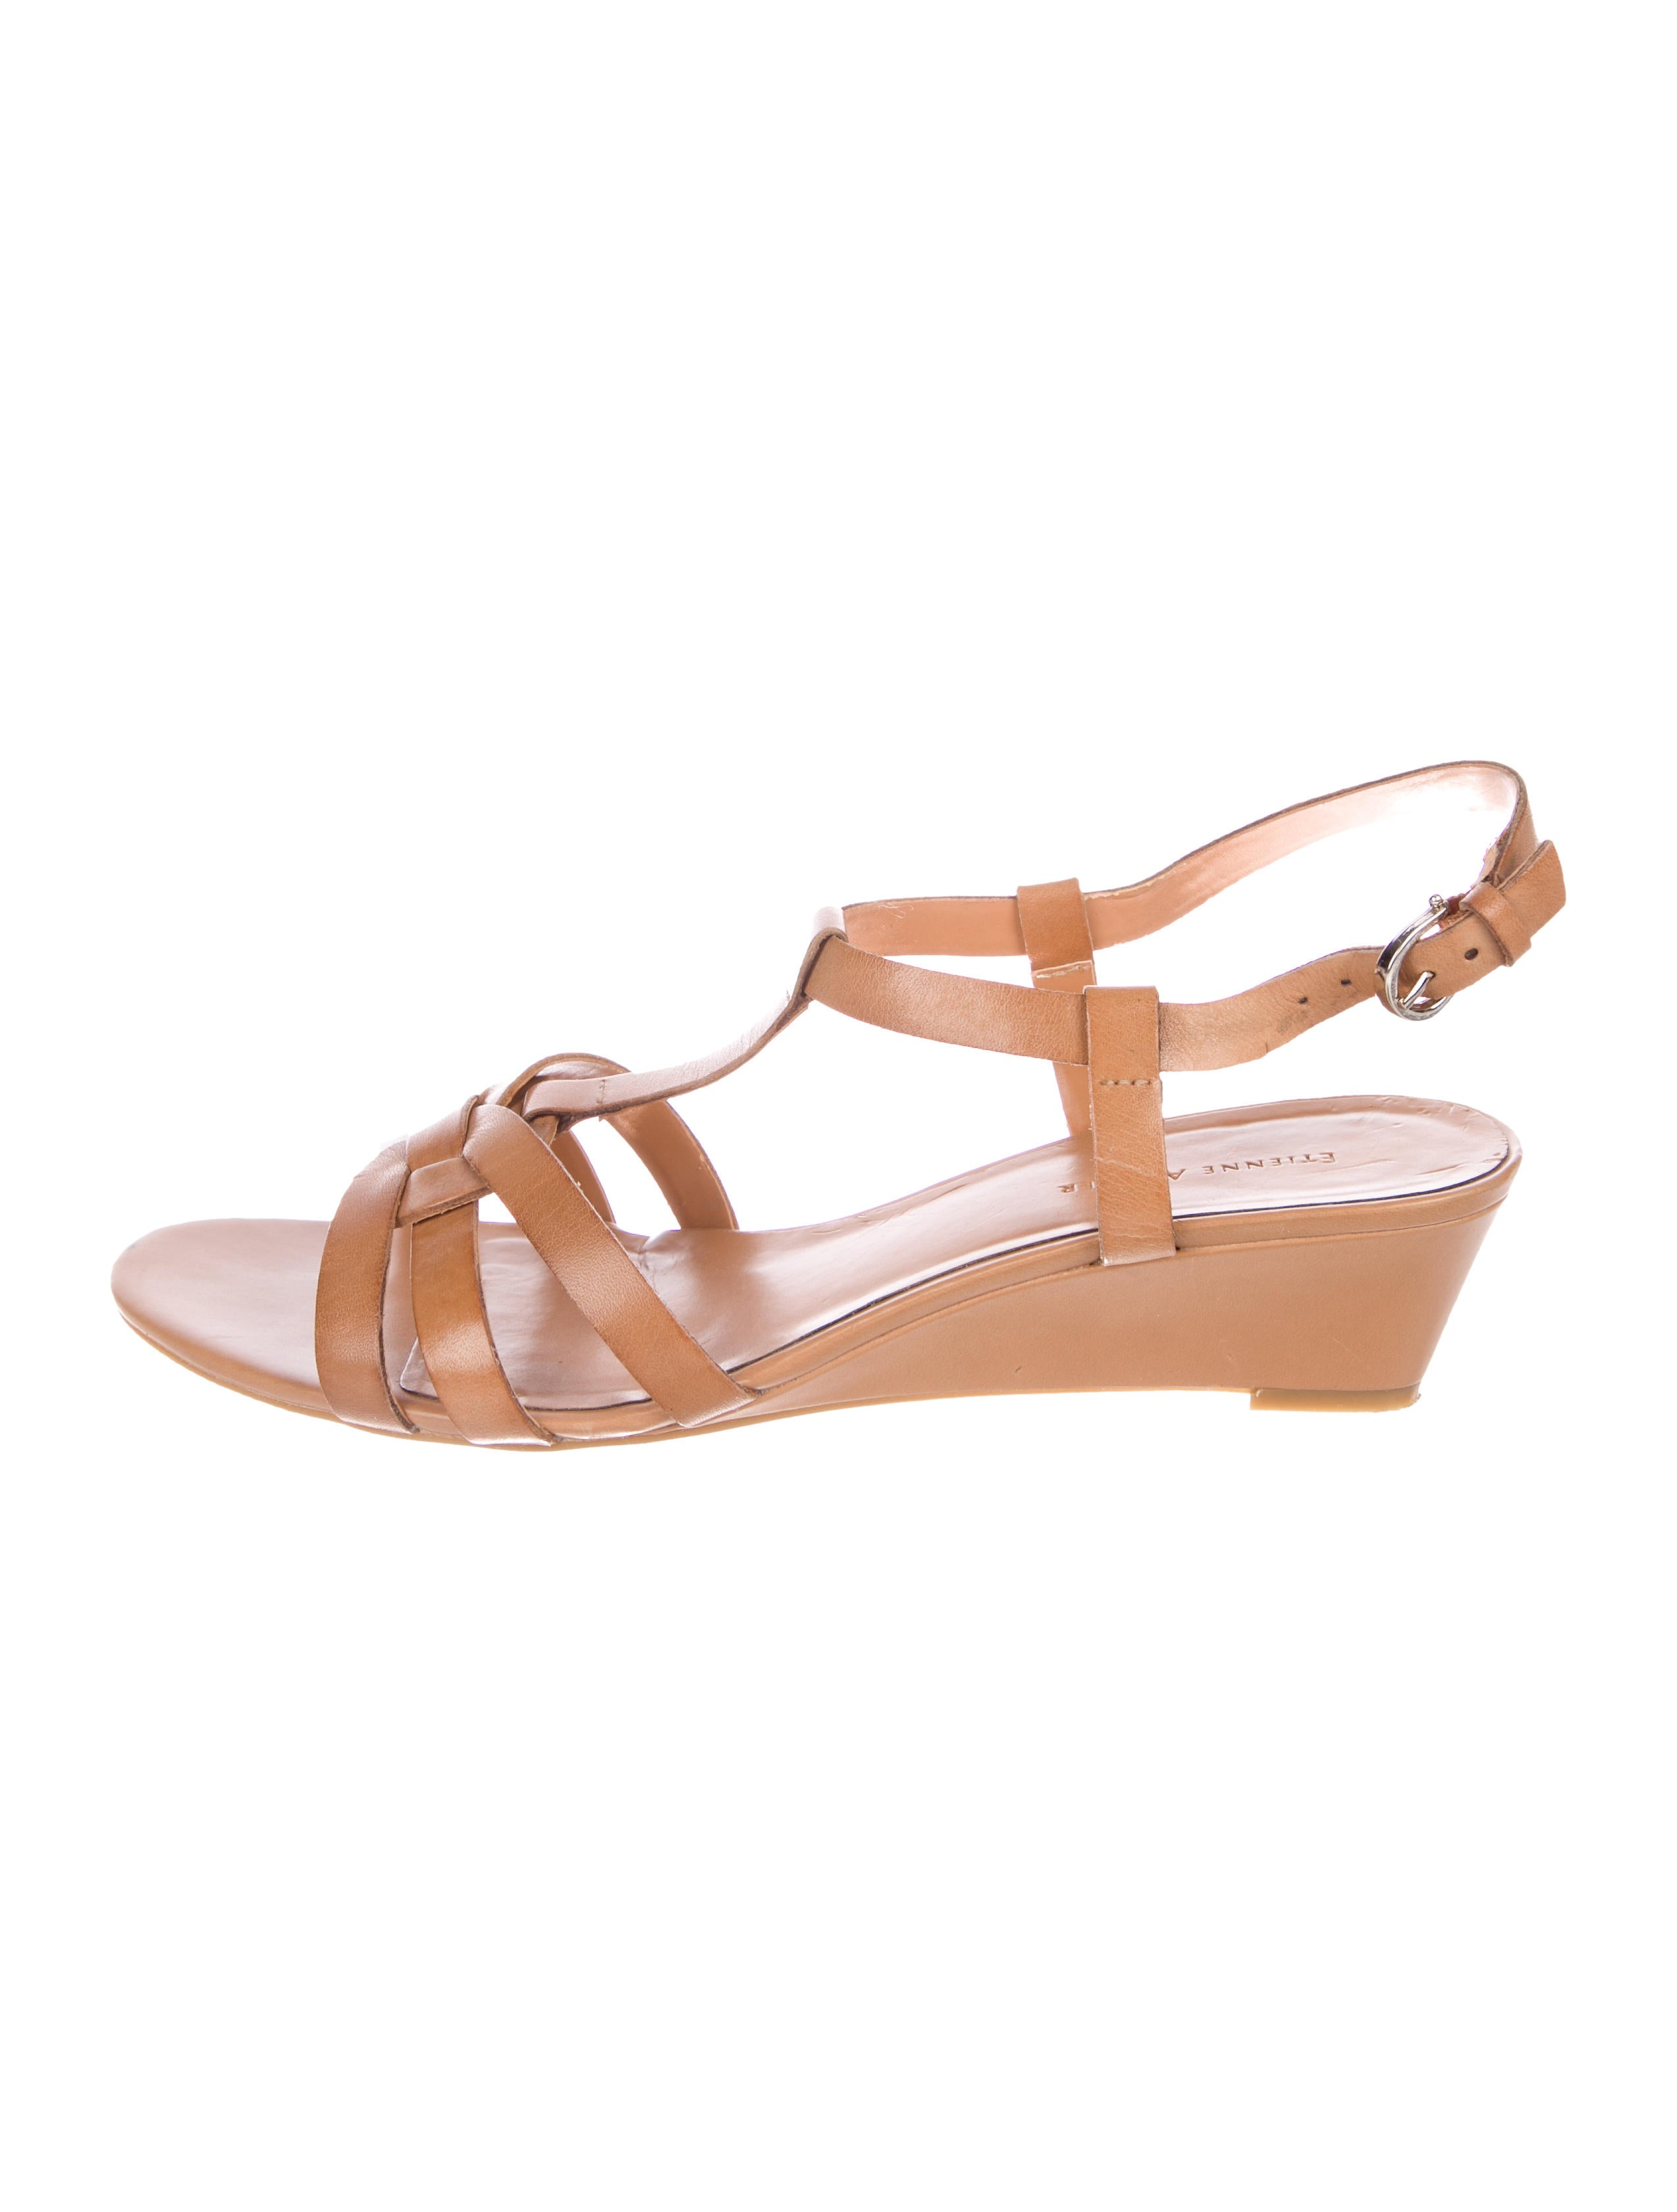 2829bd4306aa5 sale great deals Etienne Aigner Leather Wedge Sandals free shipping real  J7U0SiuzW